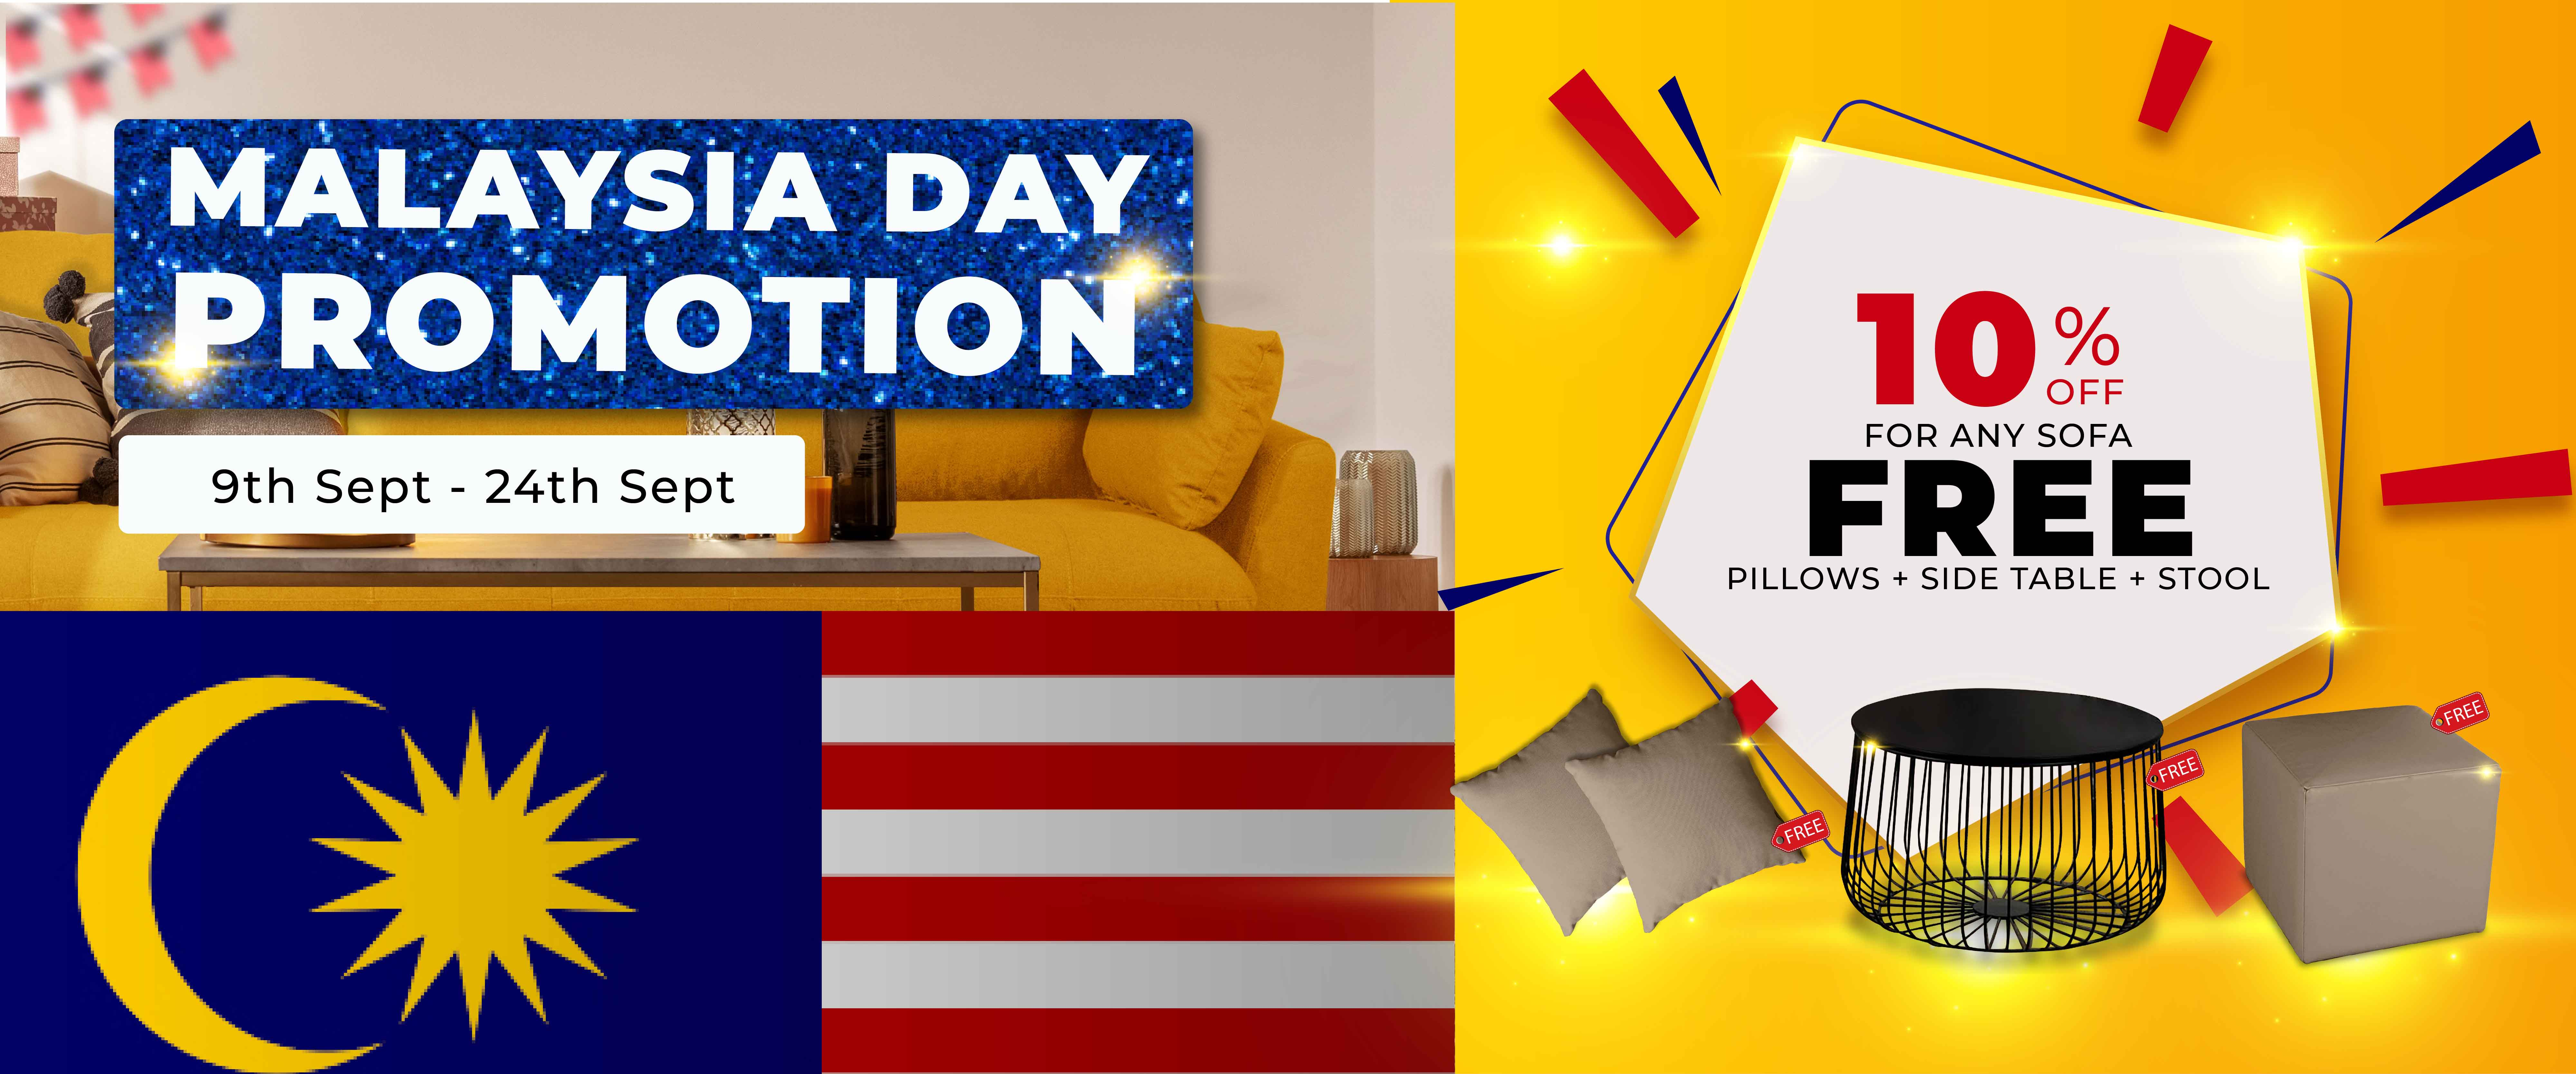 Malaysia Day Promotion